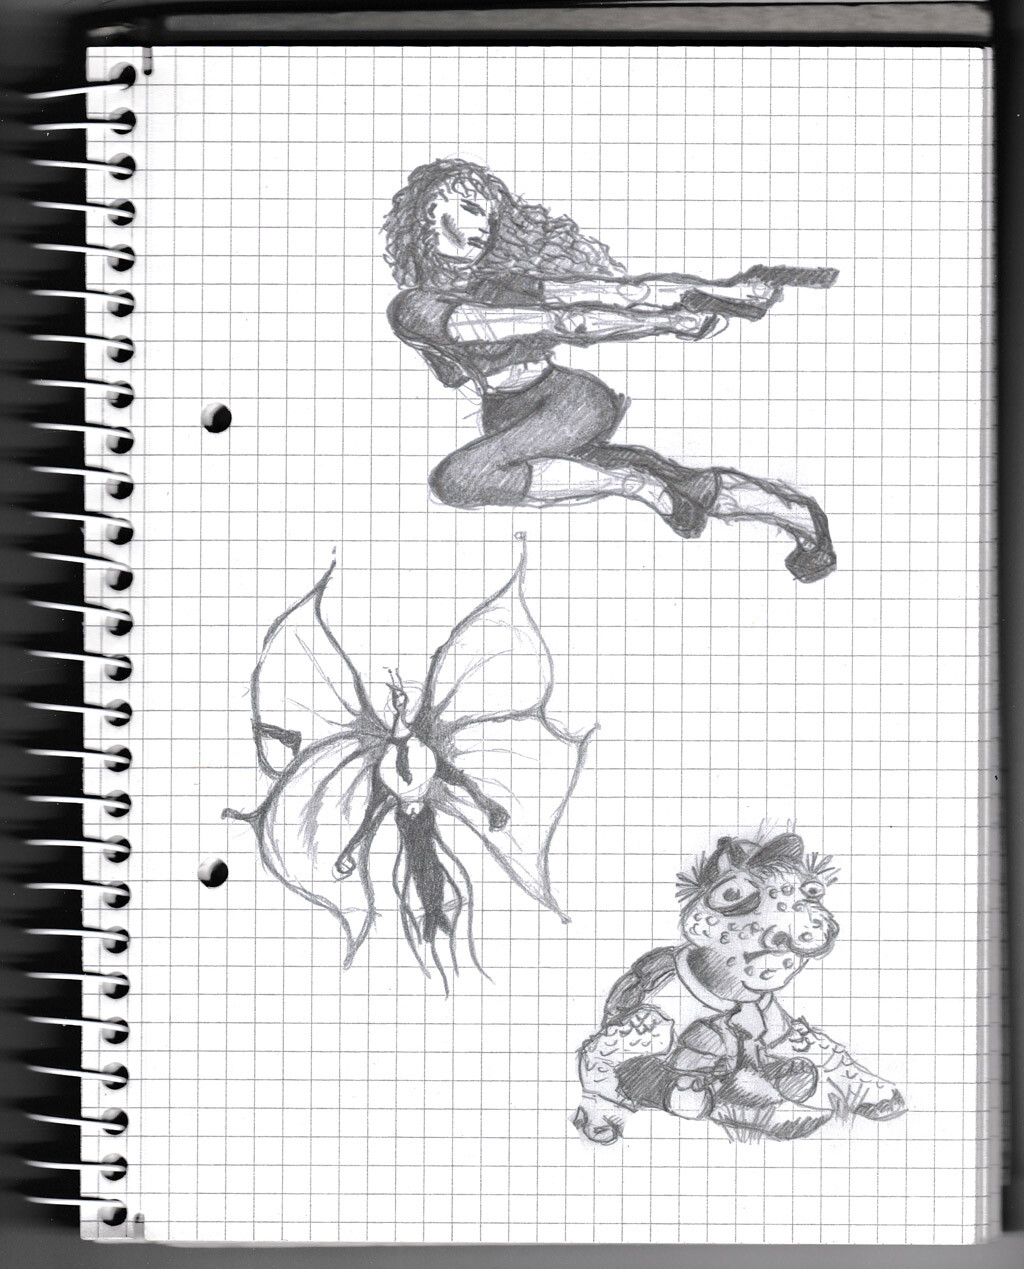 character, sketch, pencil, monster, creature, butterfly, warrior lady, turtle,